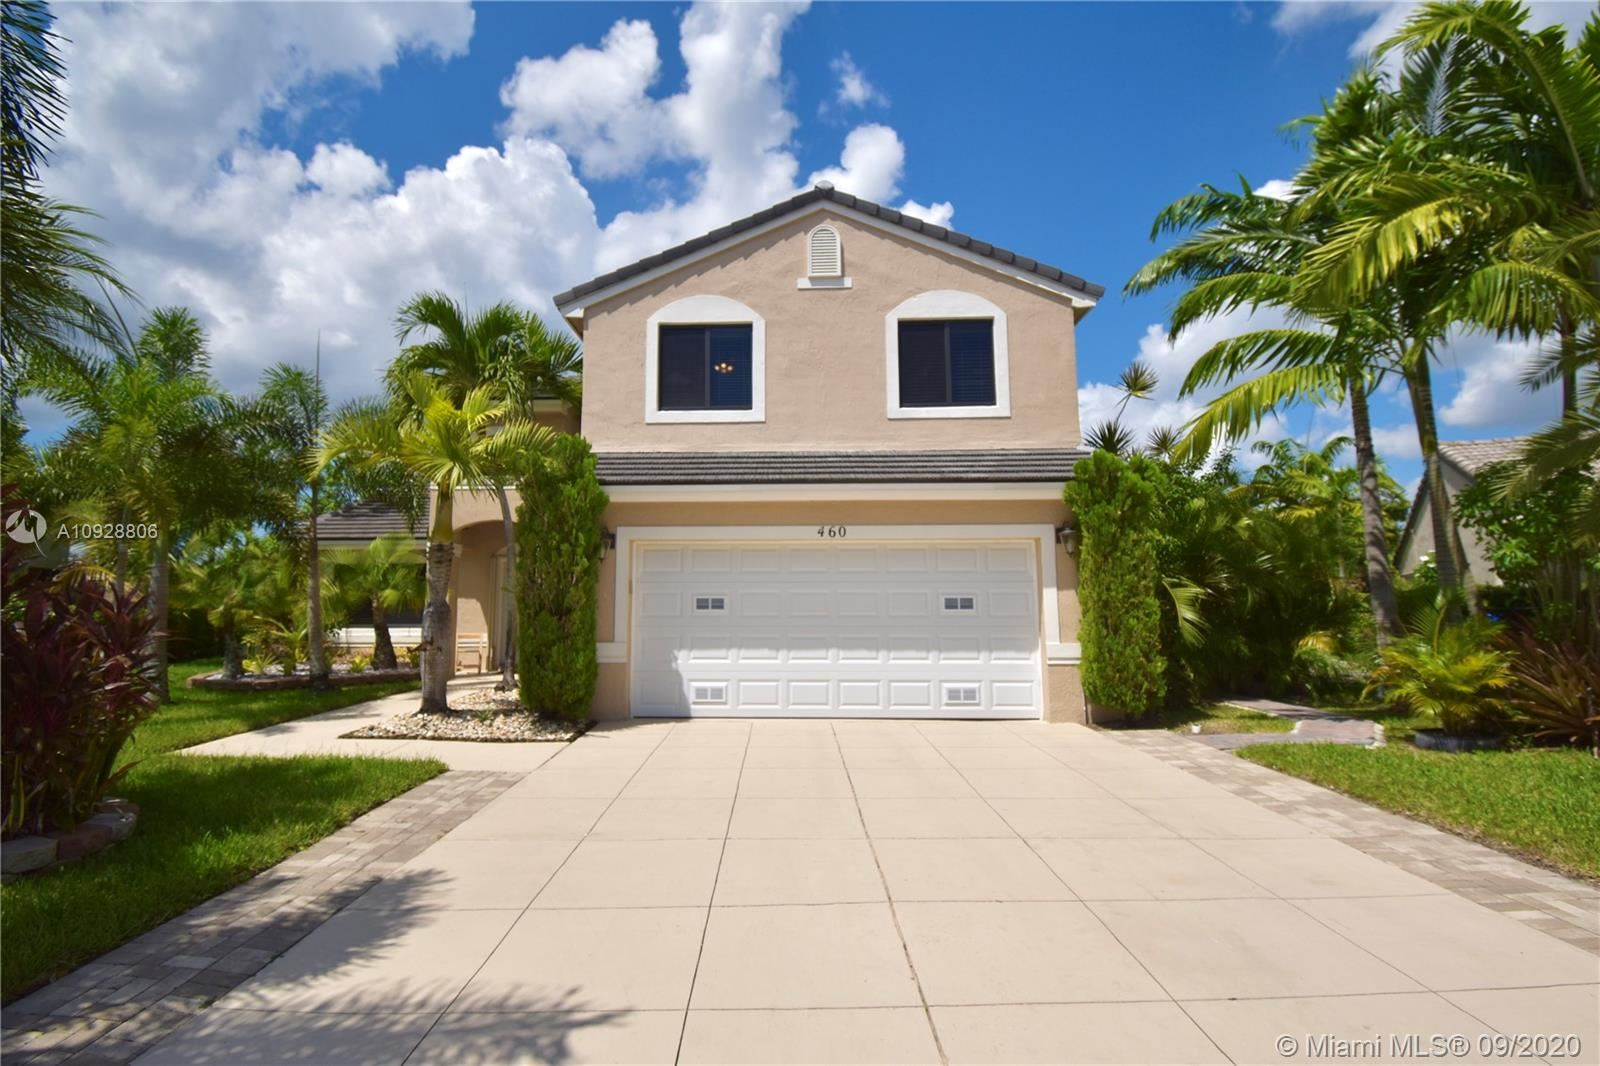 Photo of 460 NW 190th Ave, Pembroke Pines, FL 33029 (MLS # A10928806)